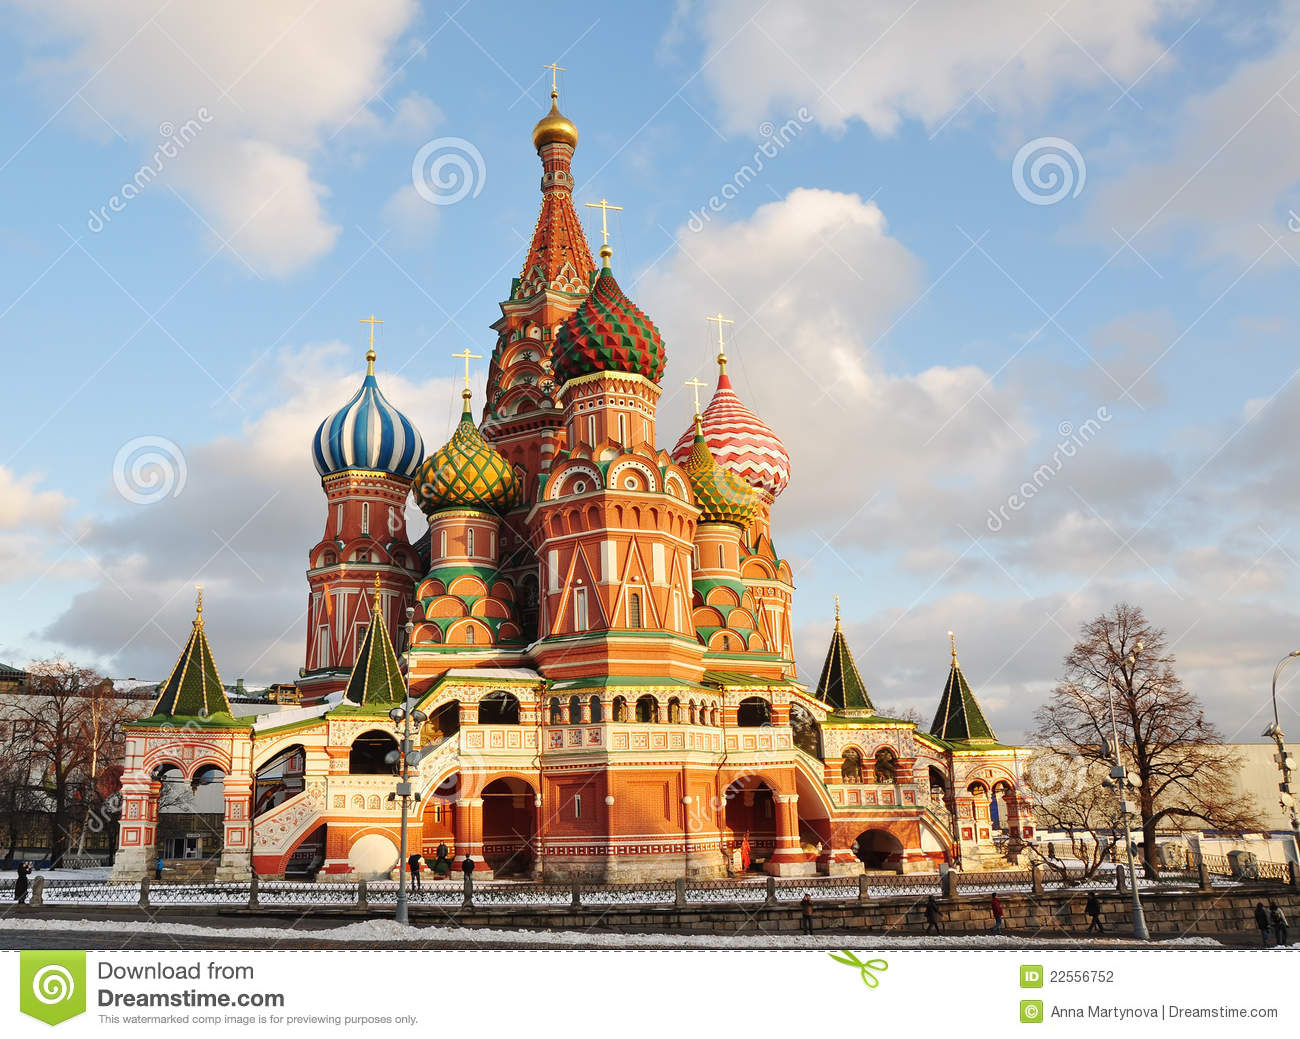 The st petersburg tourism board - 2 8